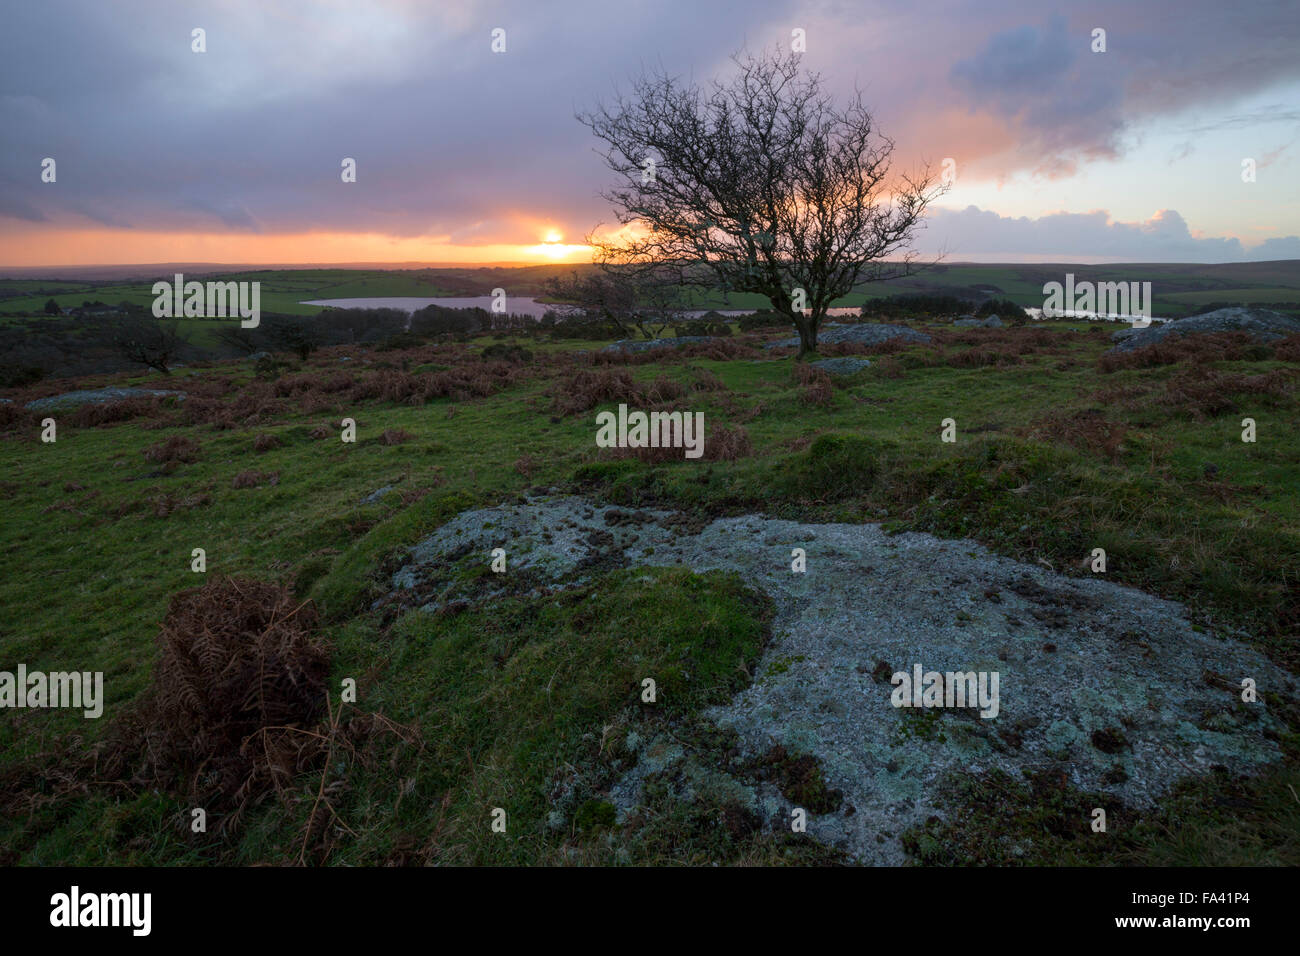 Sun setting on Bodmin moor from the slopes of Tregarrick Tor on Bodmin Moor - Stock Image